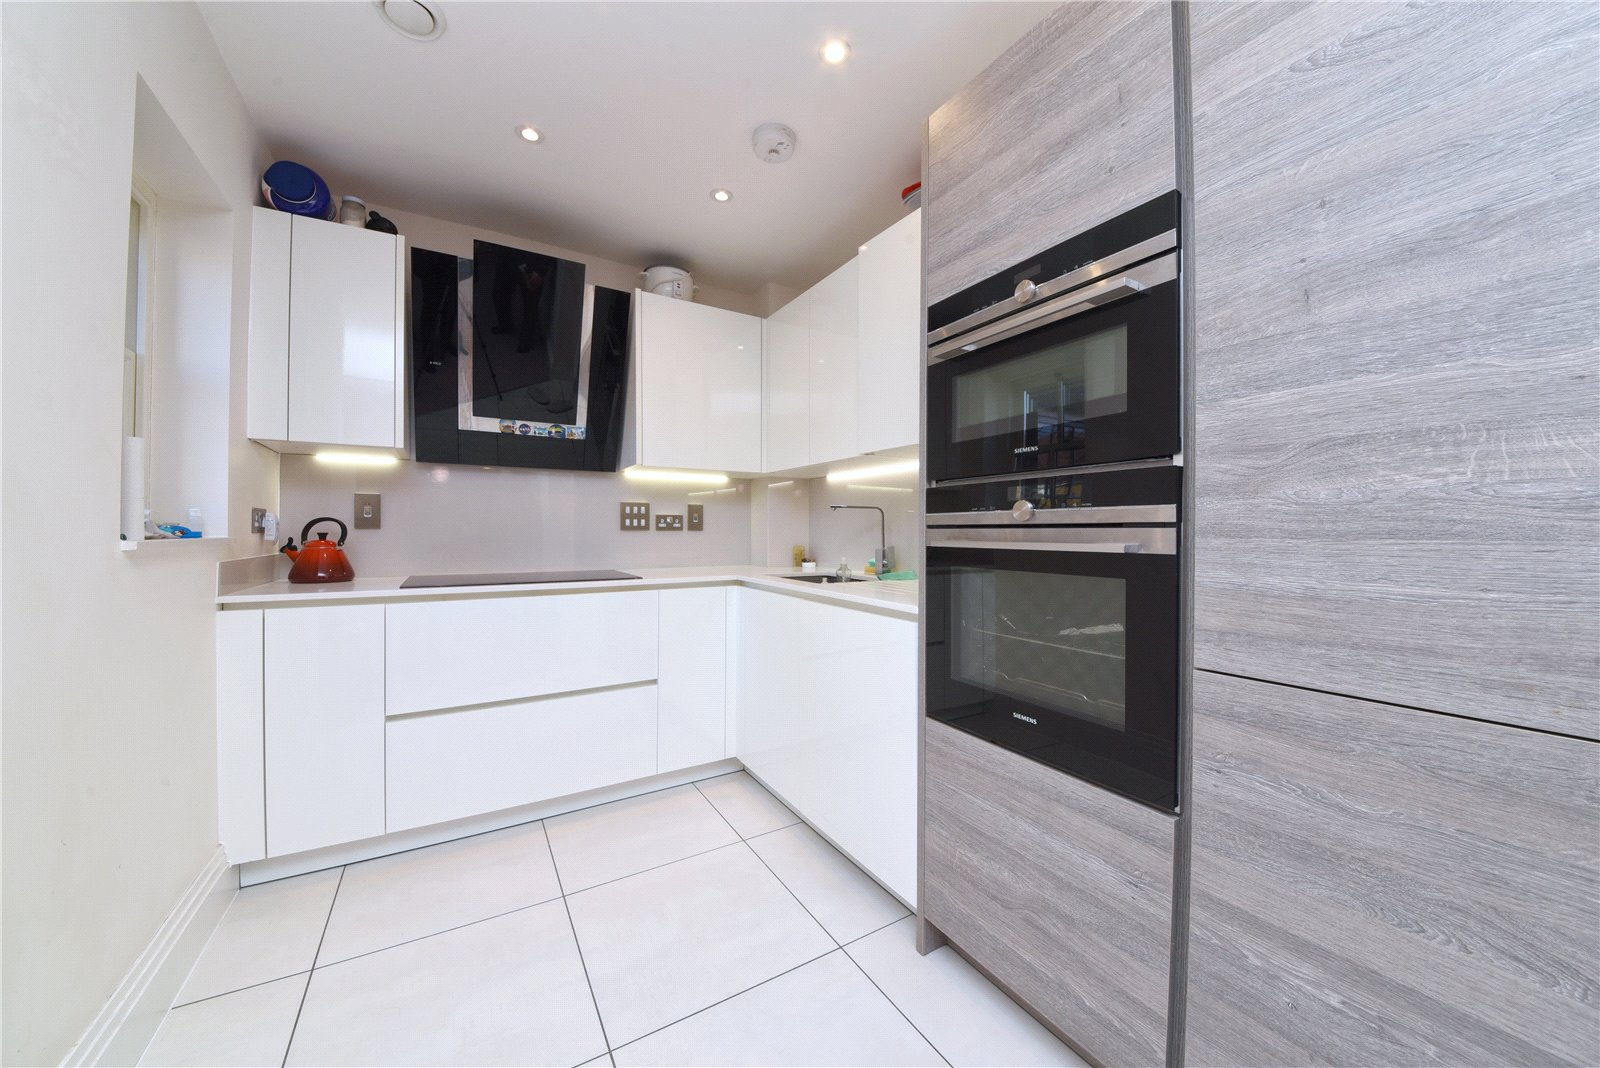 2 bed apartment for sale in Woodside Park, N12 8QP  - Property Image 2